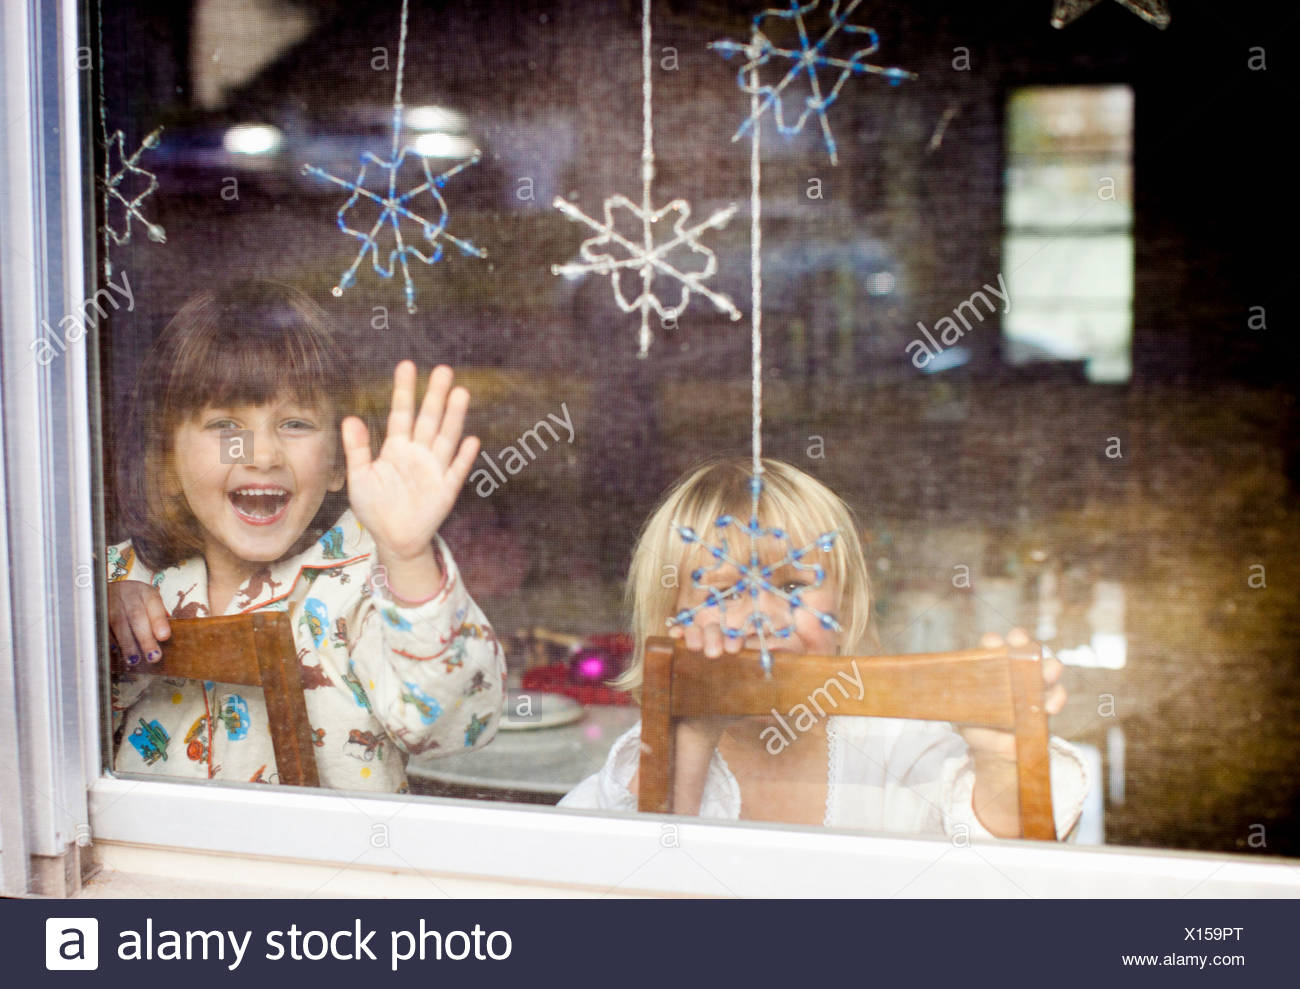 Children laughing and waving at window with dangling snowflakes - Stock Image